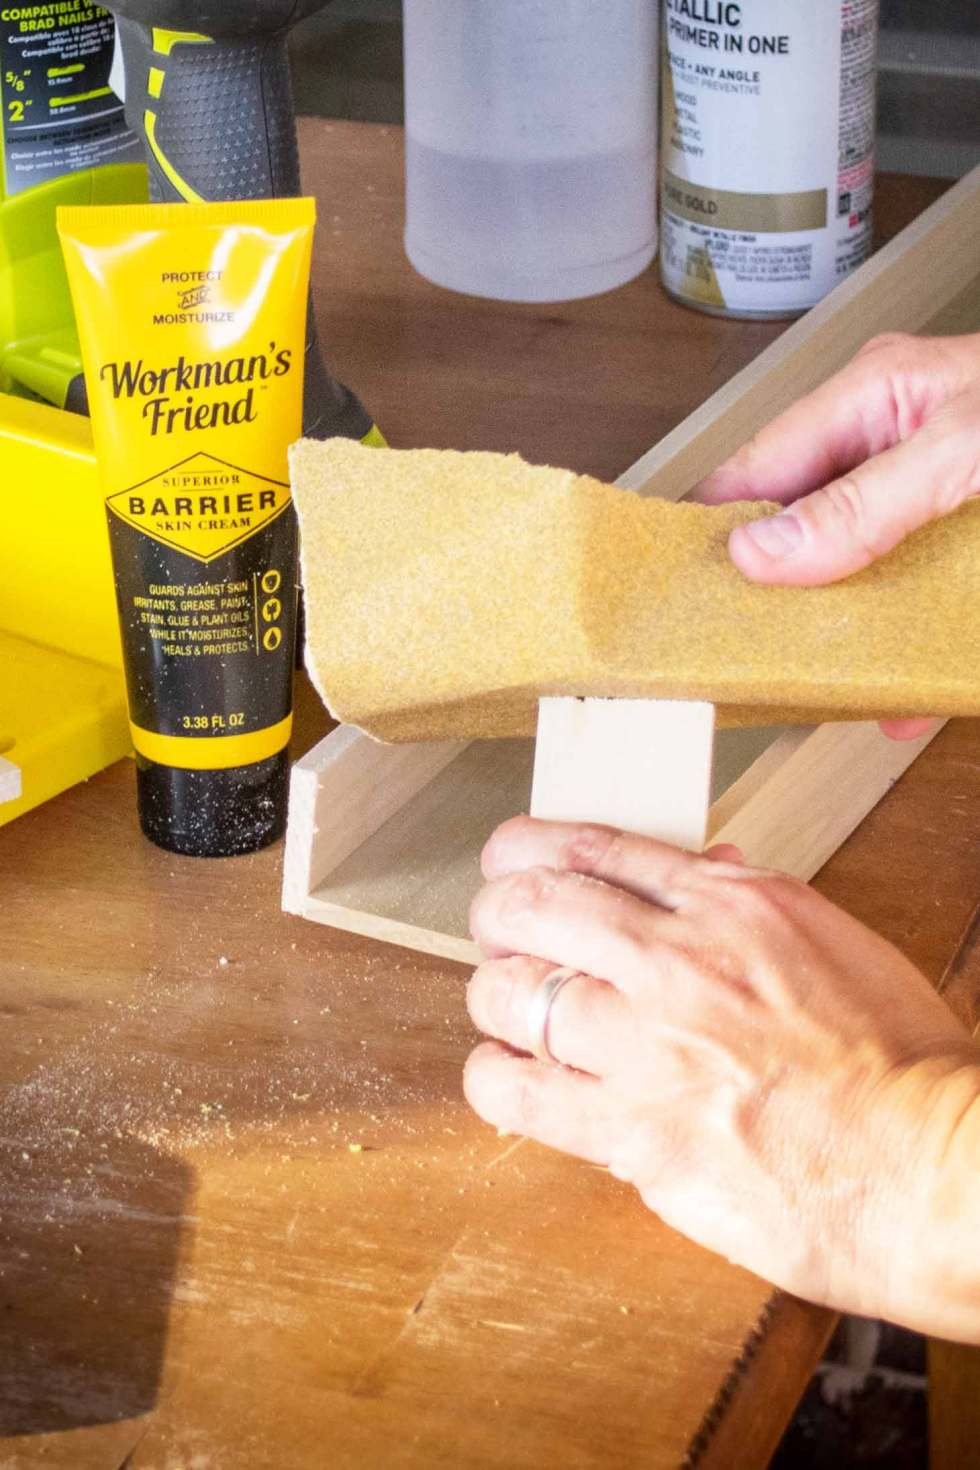 Prevent saw dust from sticking to hands with workman's friend!